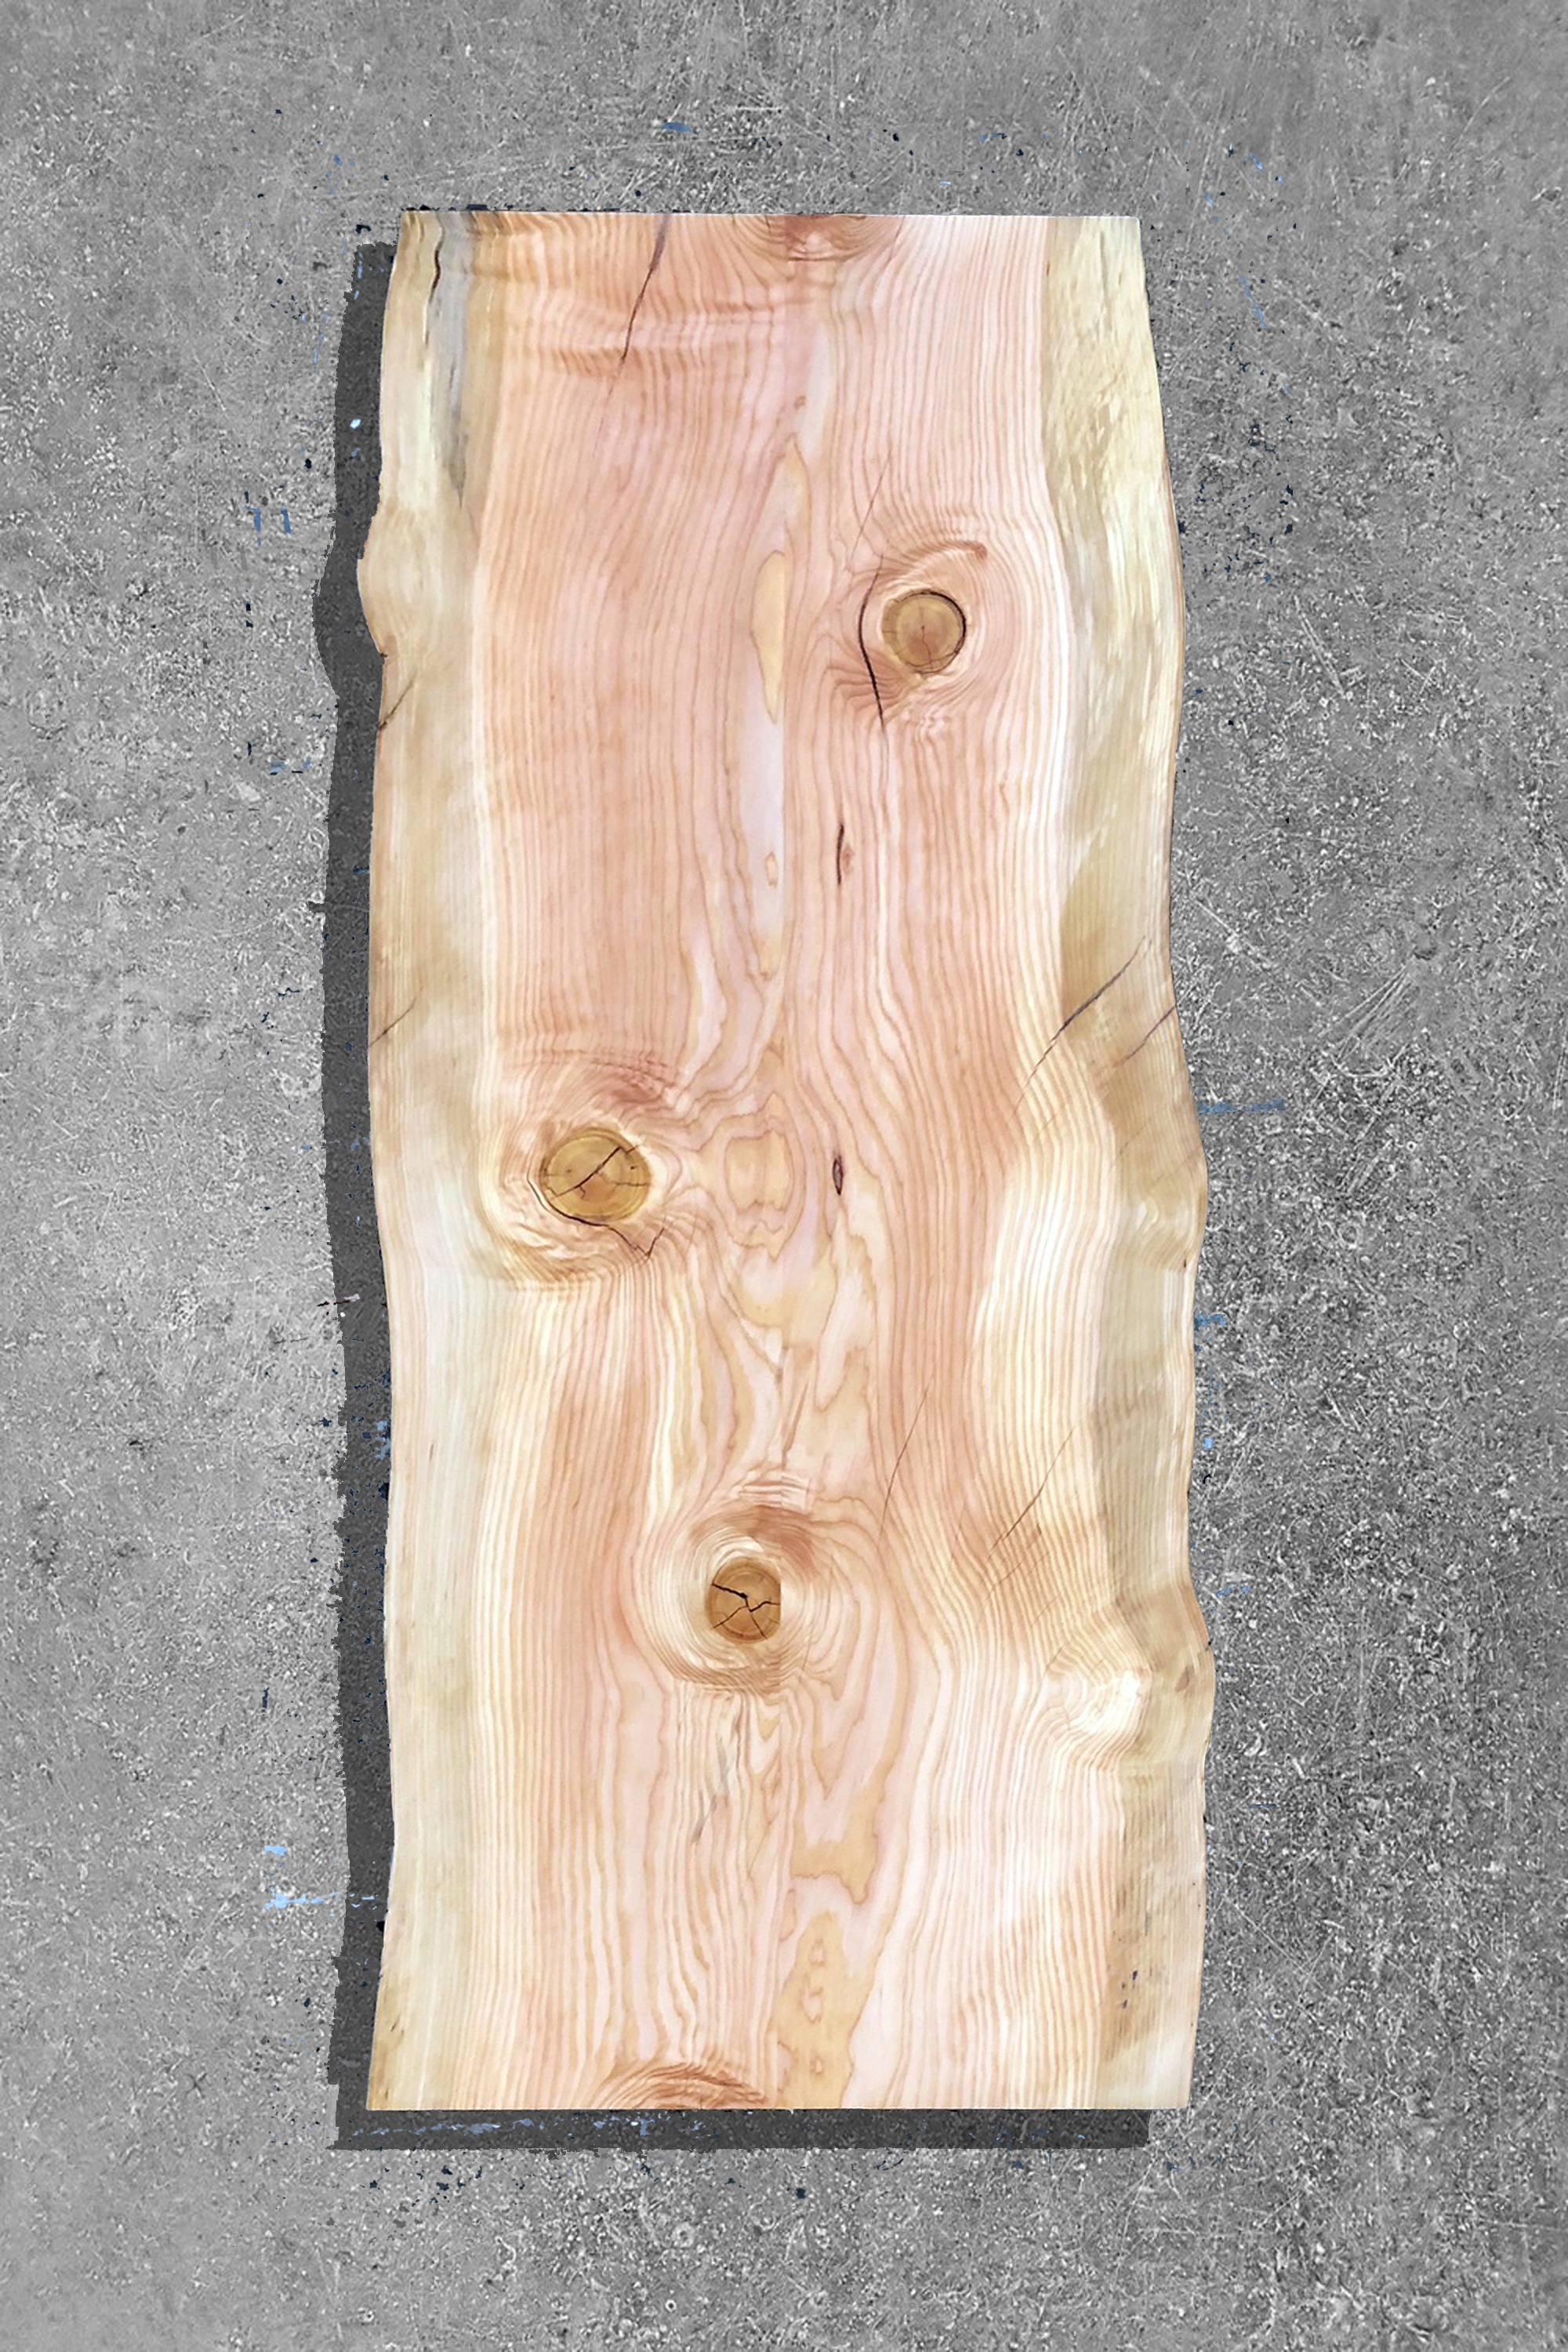 "CAF-F #4 - DOUGLAS FIR31"" W X 75"" L X 2"" TSINGLE SLAB-REJOINEDLIVE EDGECLEAR EPOXYCLEAR OIDE'S OIL FINISH$2,000.00 CAD"